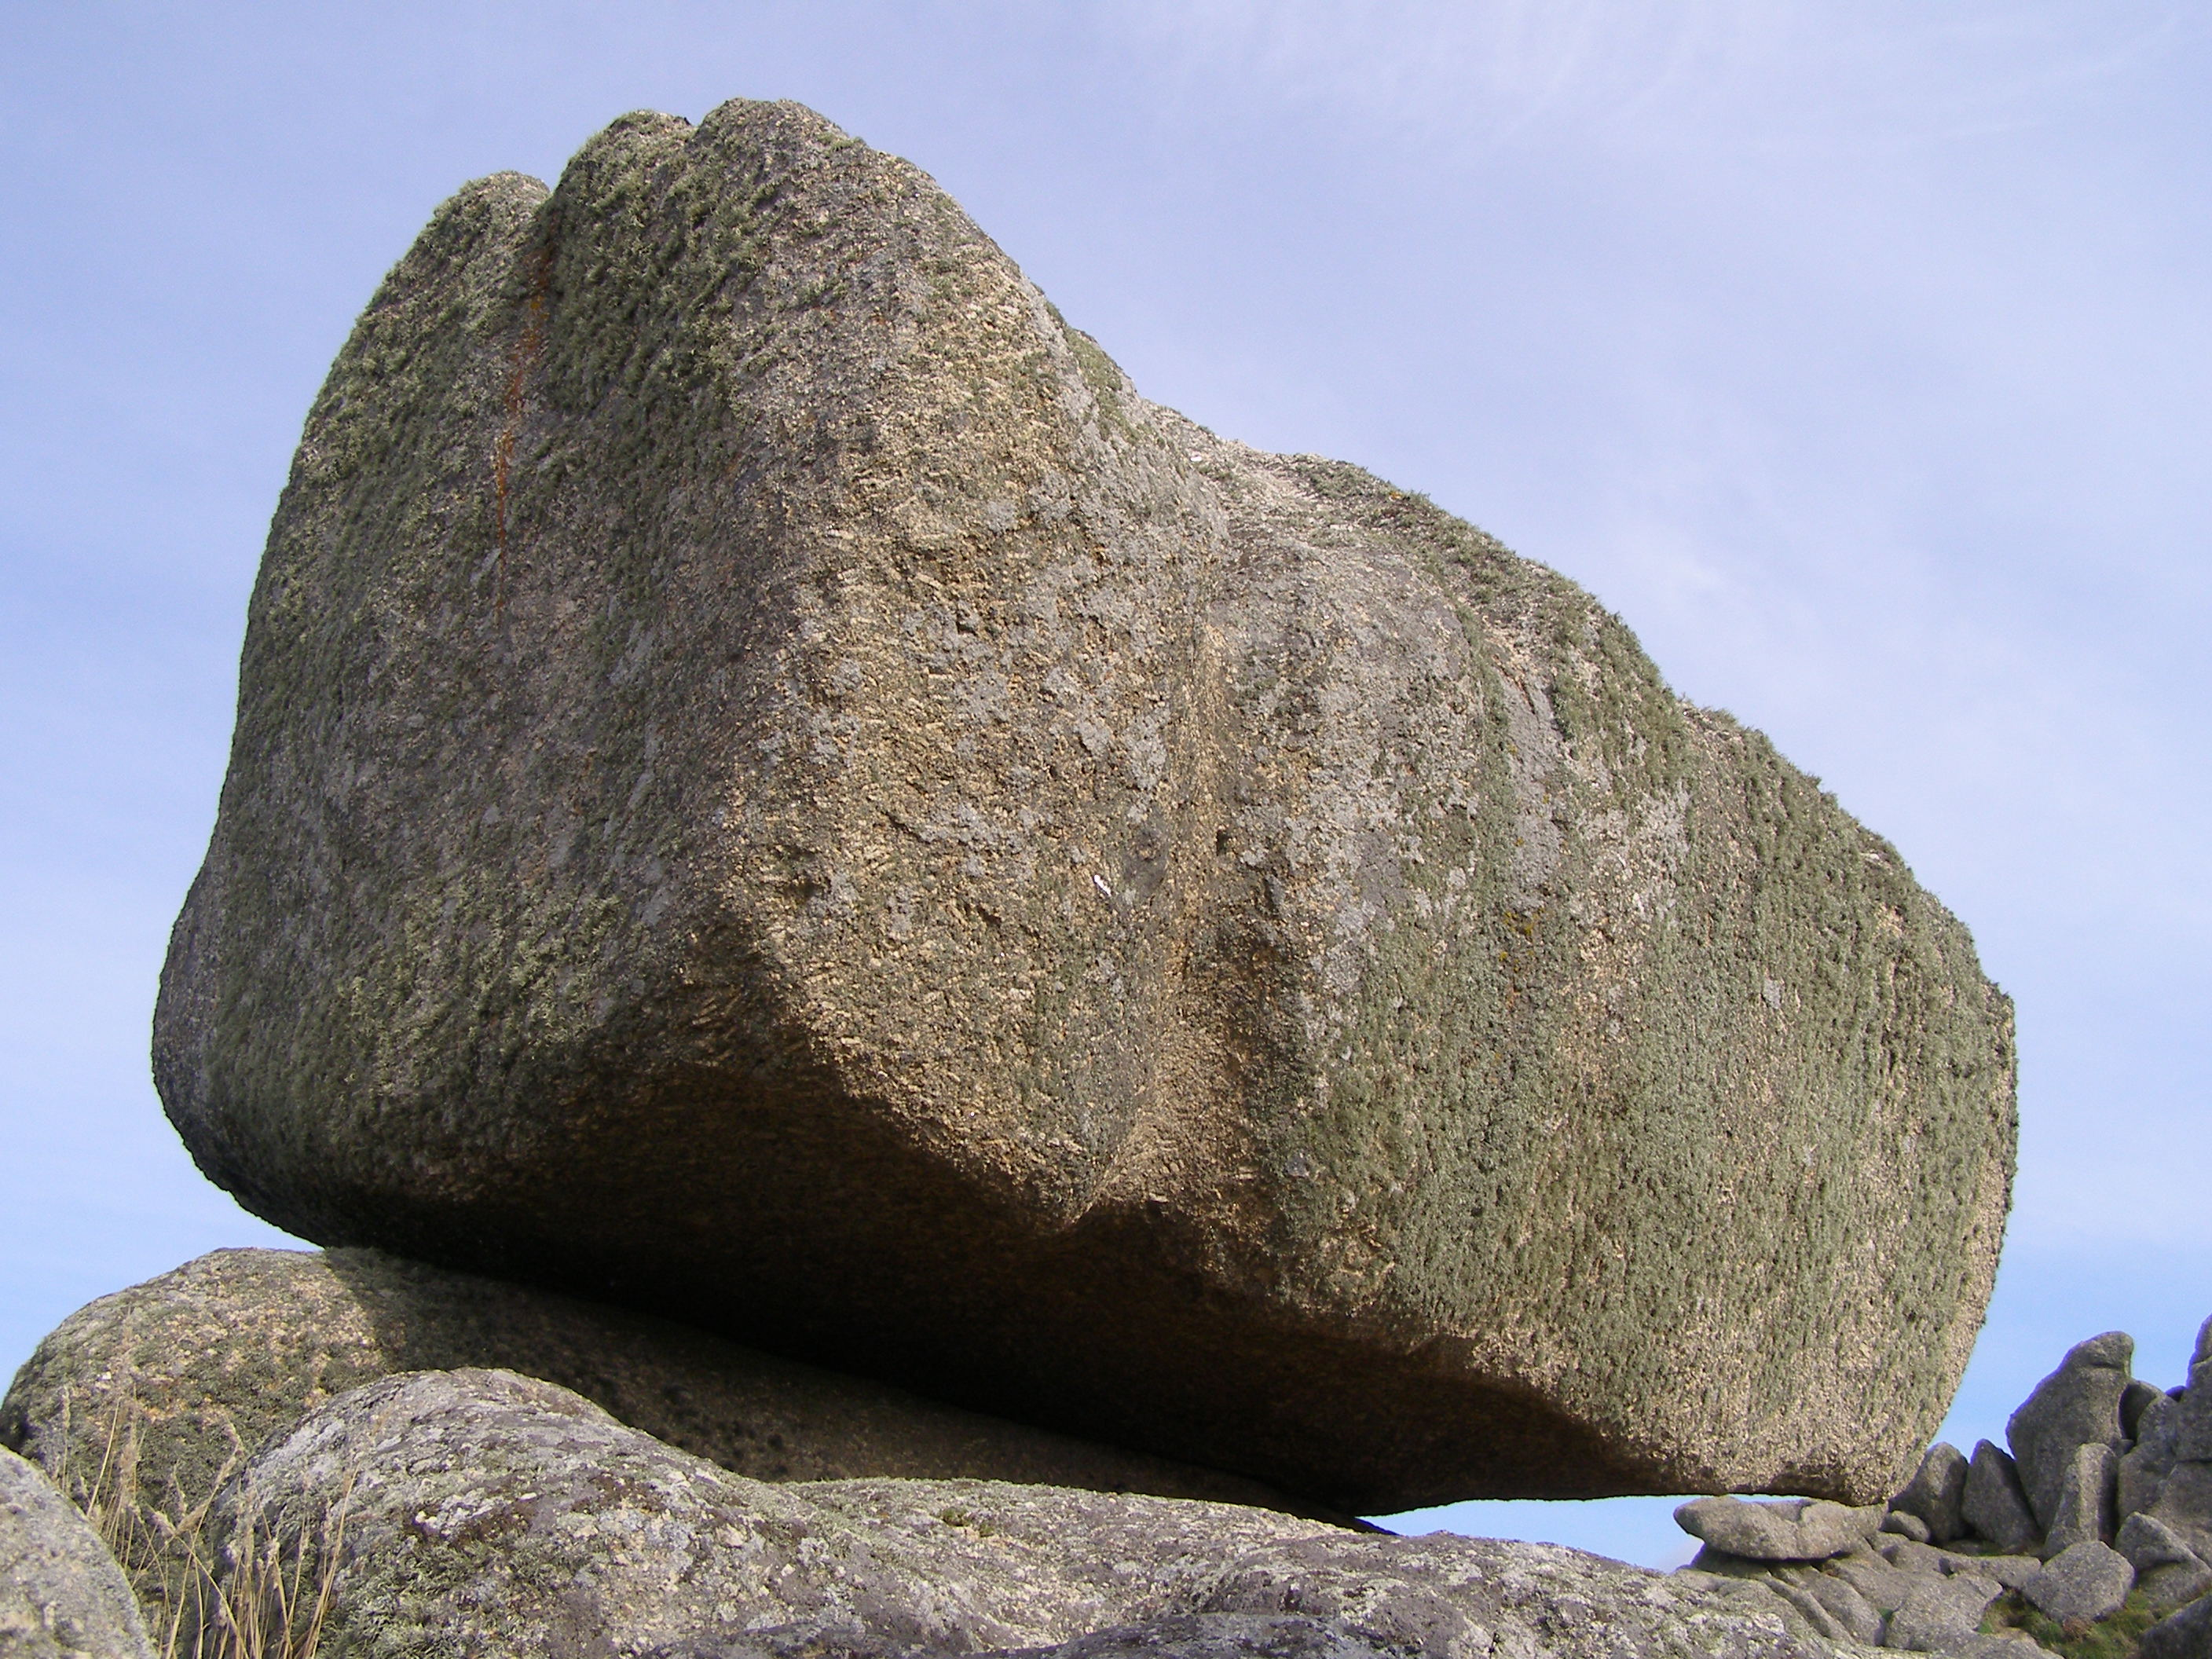 https://upload.wikimedia.org/wikipedia/commons/b/b4/Logan_Rock_Treen_closeup.jpg